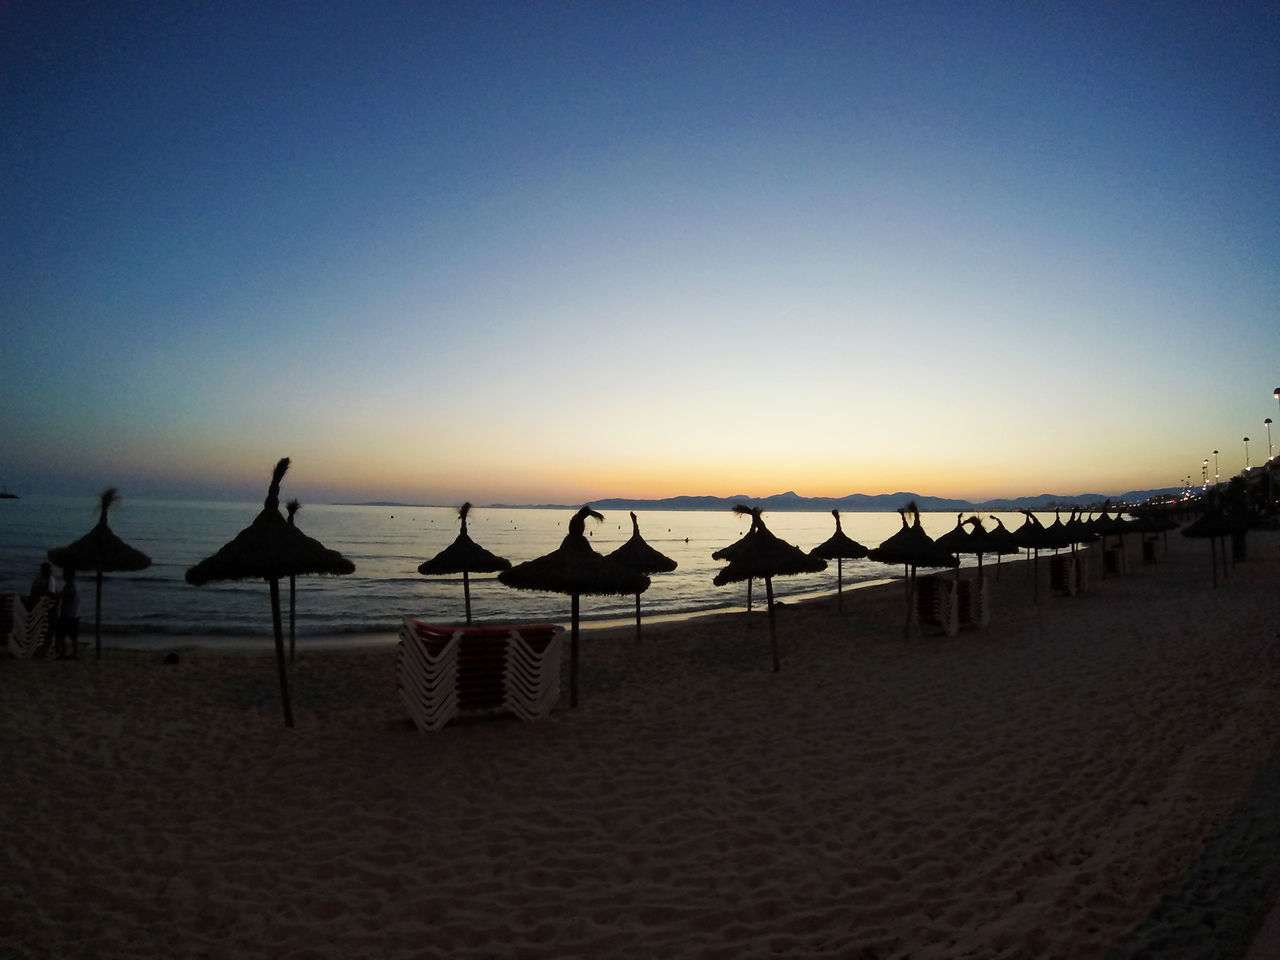 beach, sea, sand, shore, tranquility, nature, water, beauty in nature, horizon over water, tranquil scene, clear sky, in a row, scenics, outdoors, sunset, summer, vacations, sun lounger, canopy, sky, silhouette, no people, blue, day